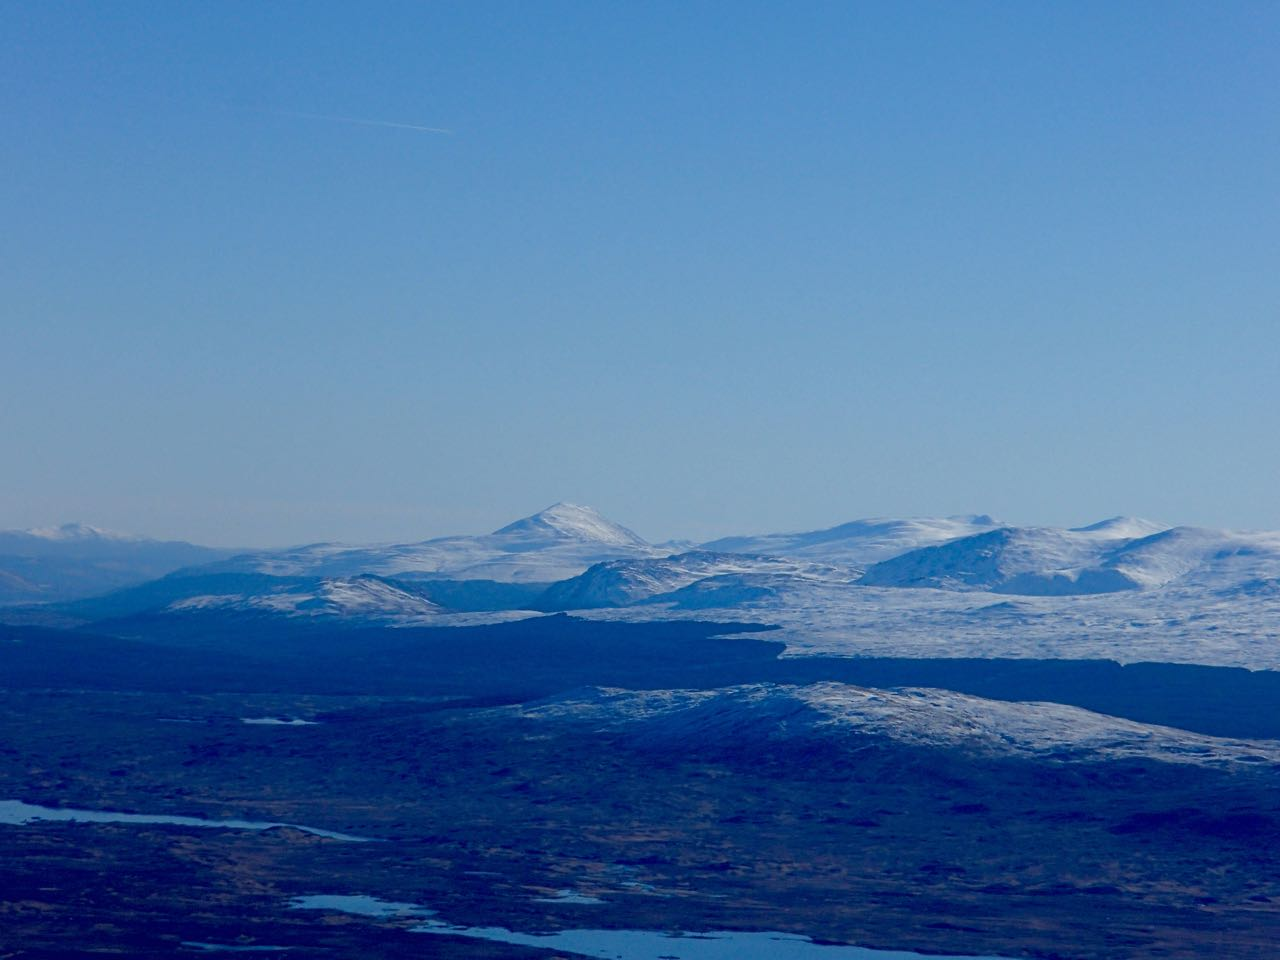 Rannoch Moor with Schiehallion in the distance. https://en.wikipedia.org/wiki/Schiehallion_experiment